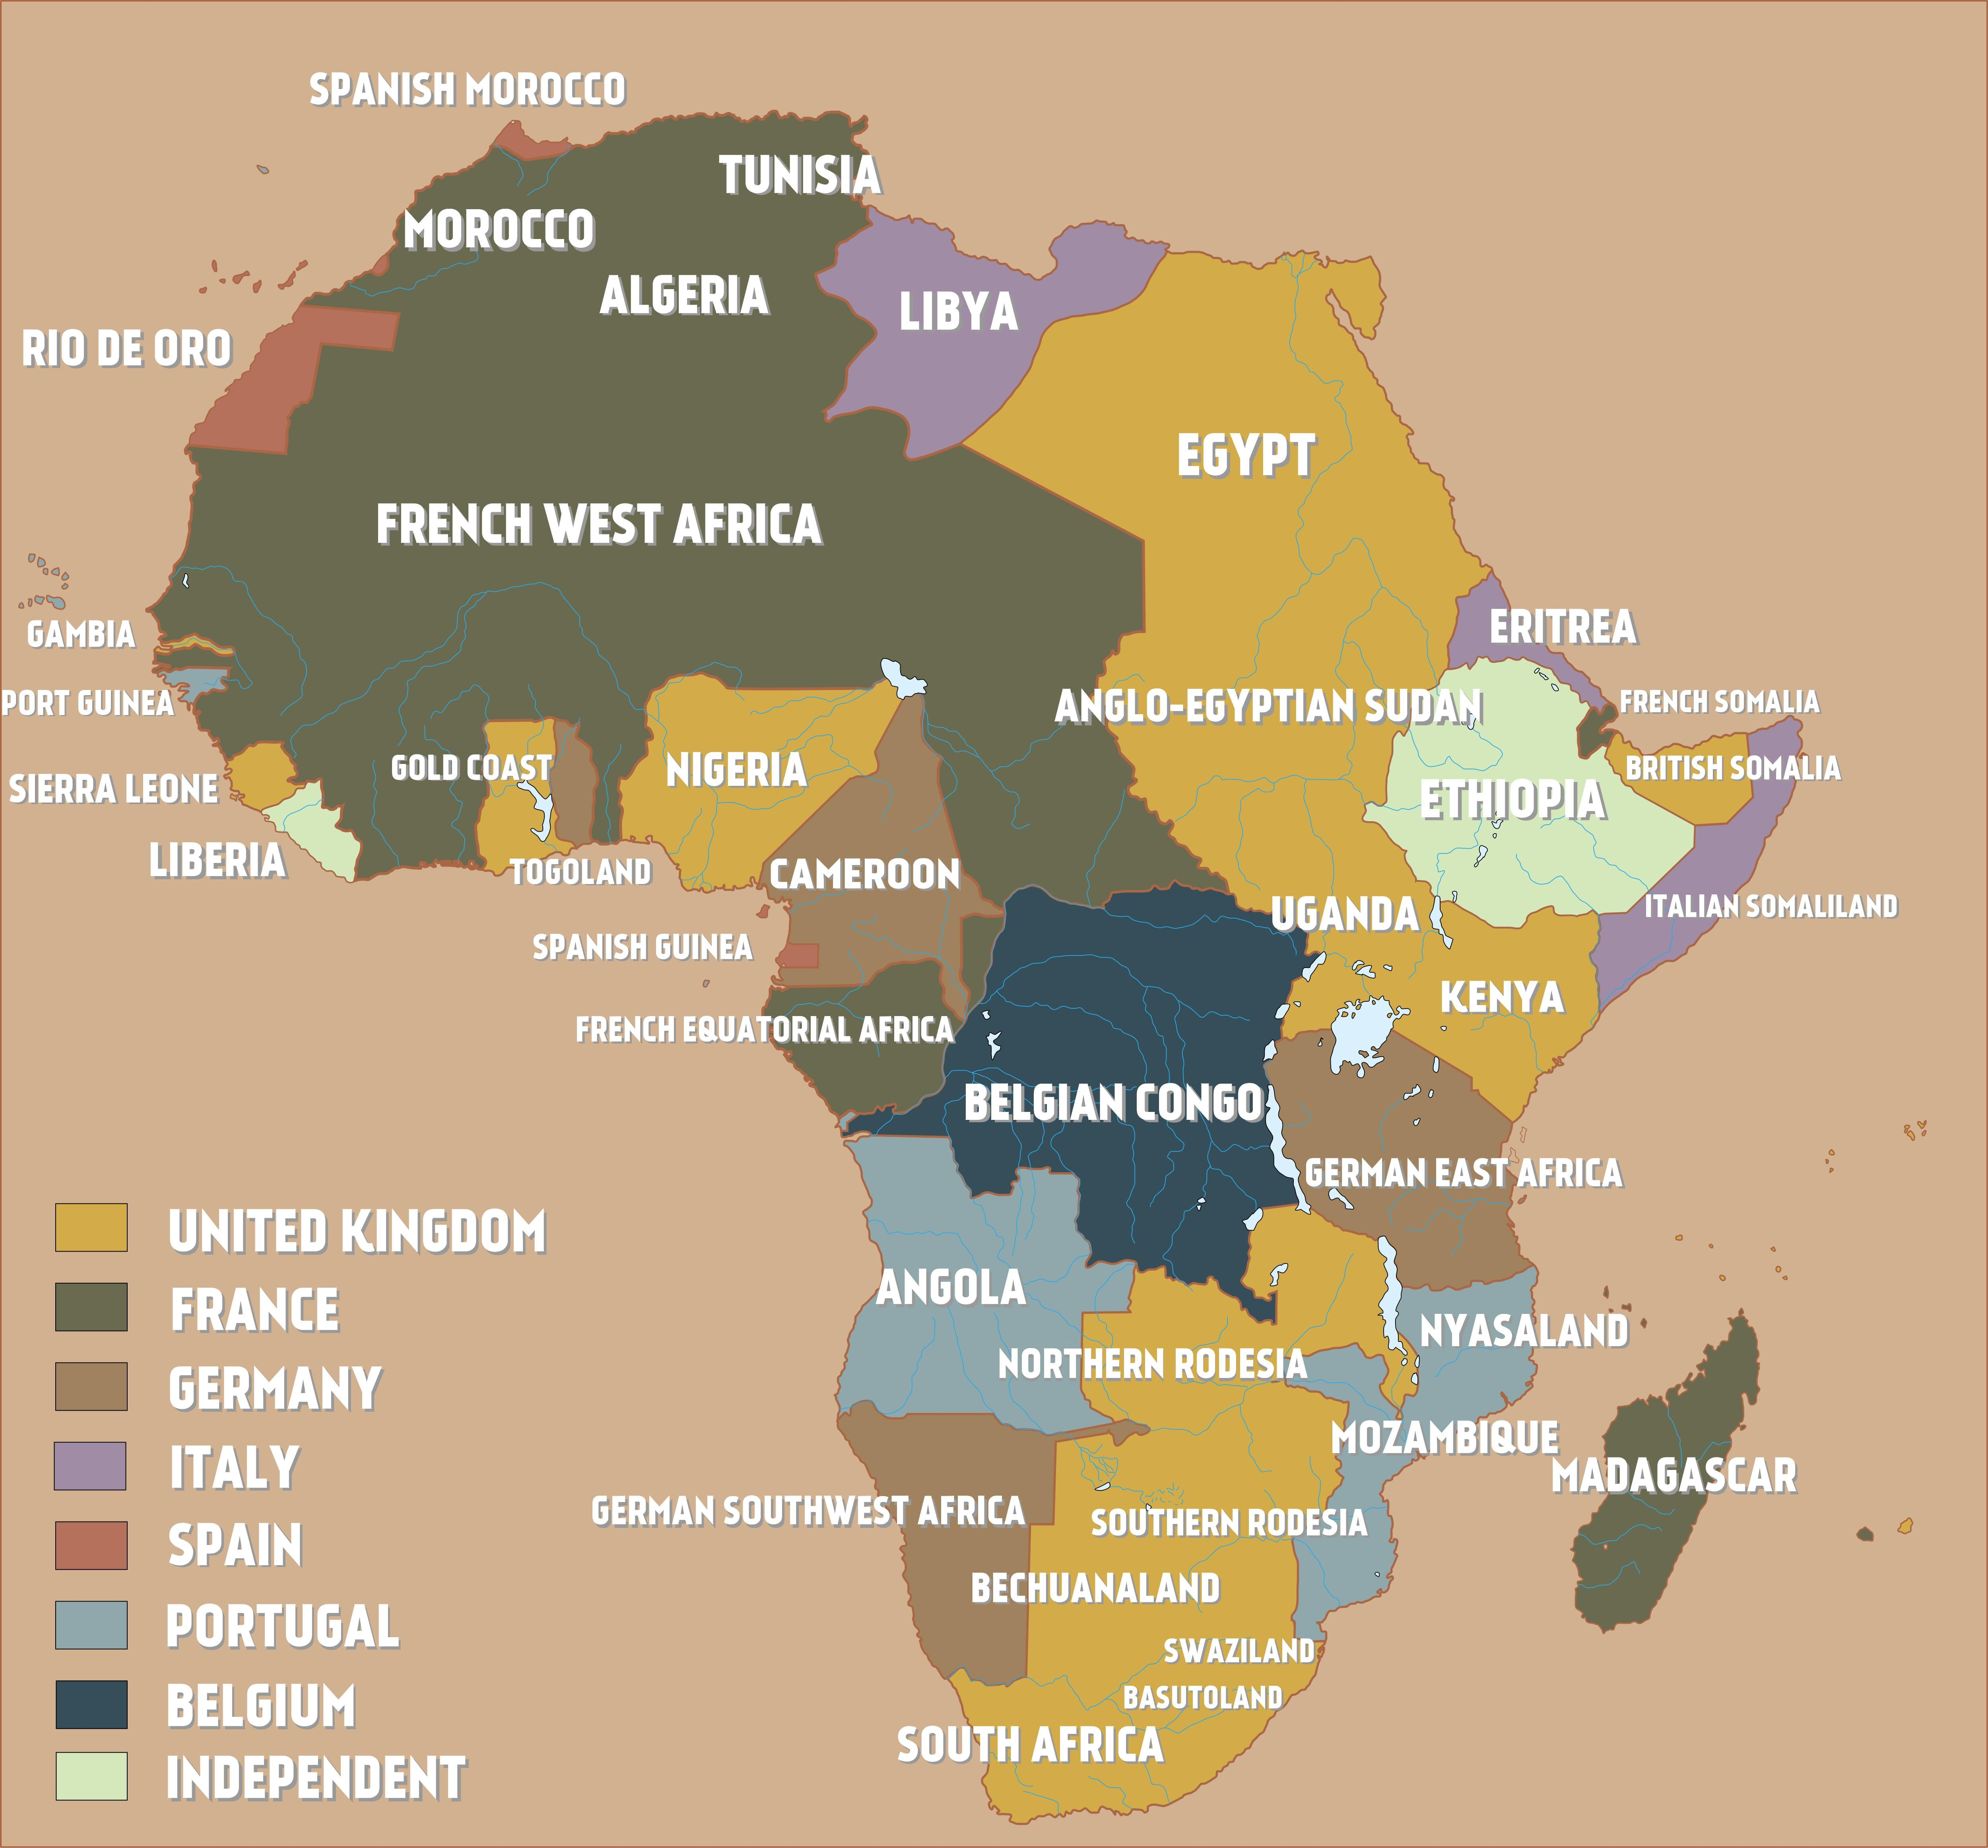 A Map Of Colonial Africa Just Before The Outbreak Of World War I